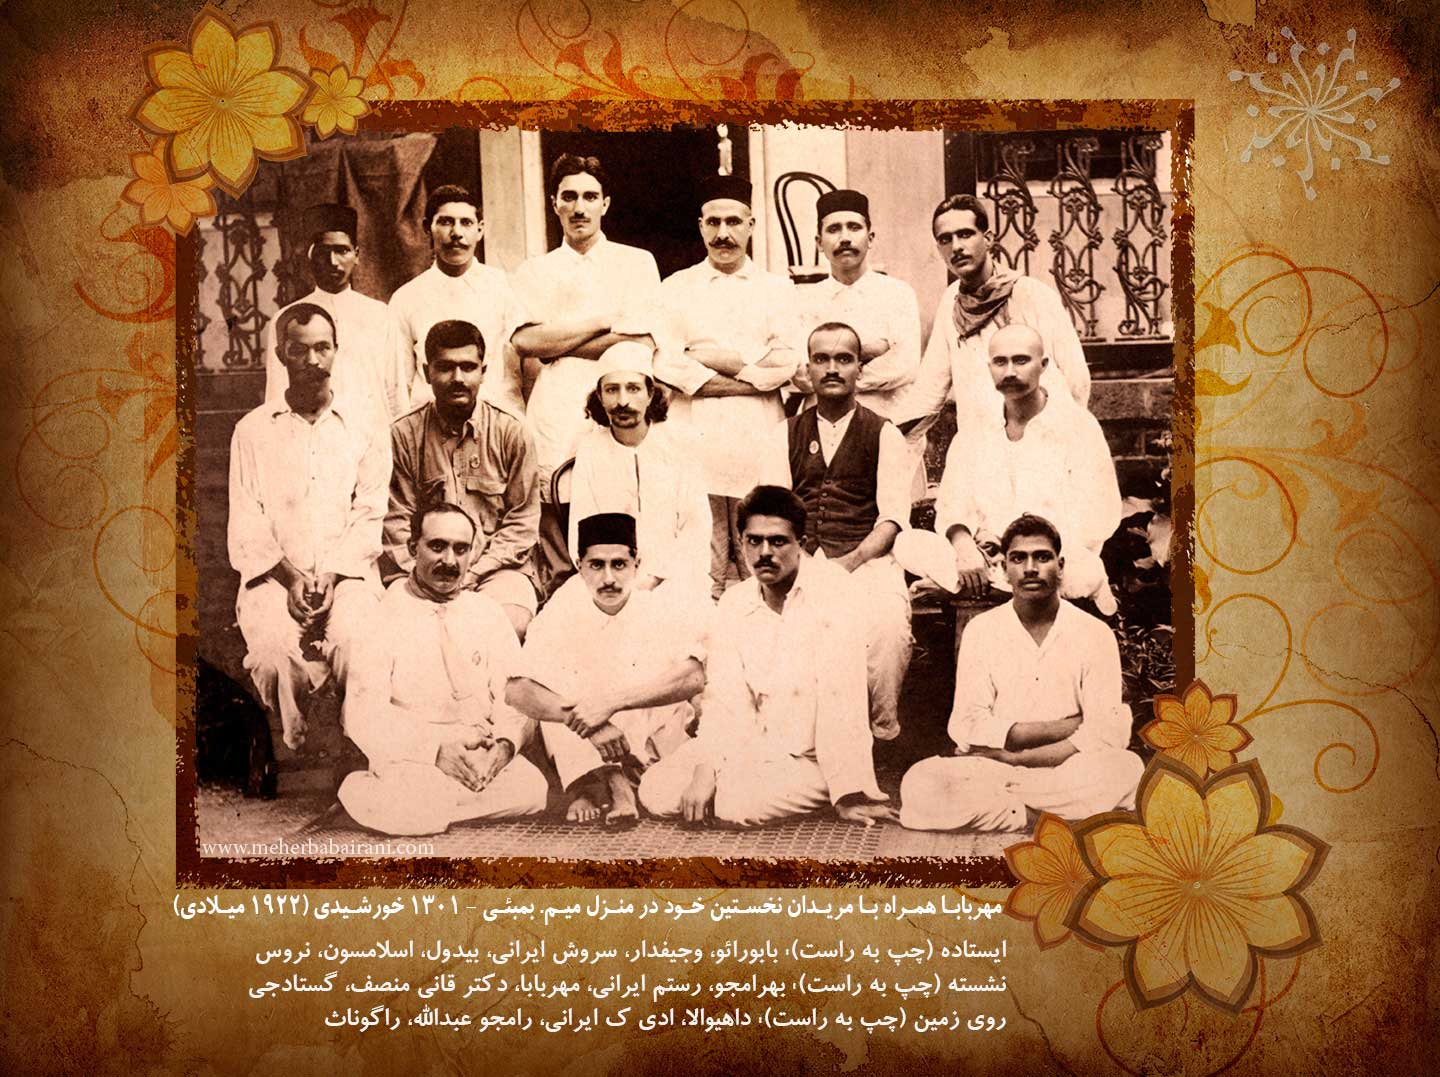 013_Meher-Baba-with-His-early-disciples-at-Manzil-e-Meem.jpg